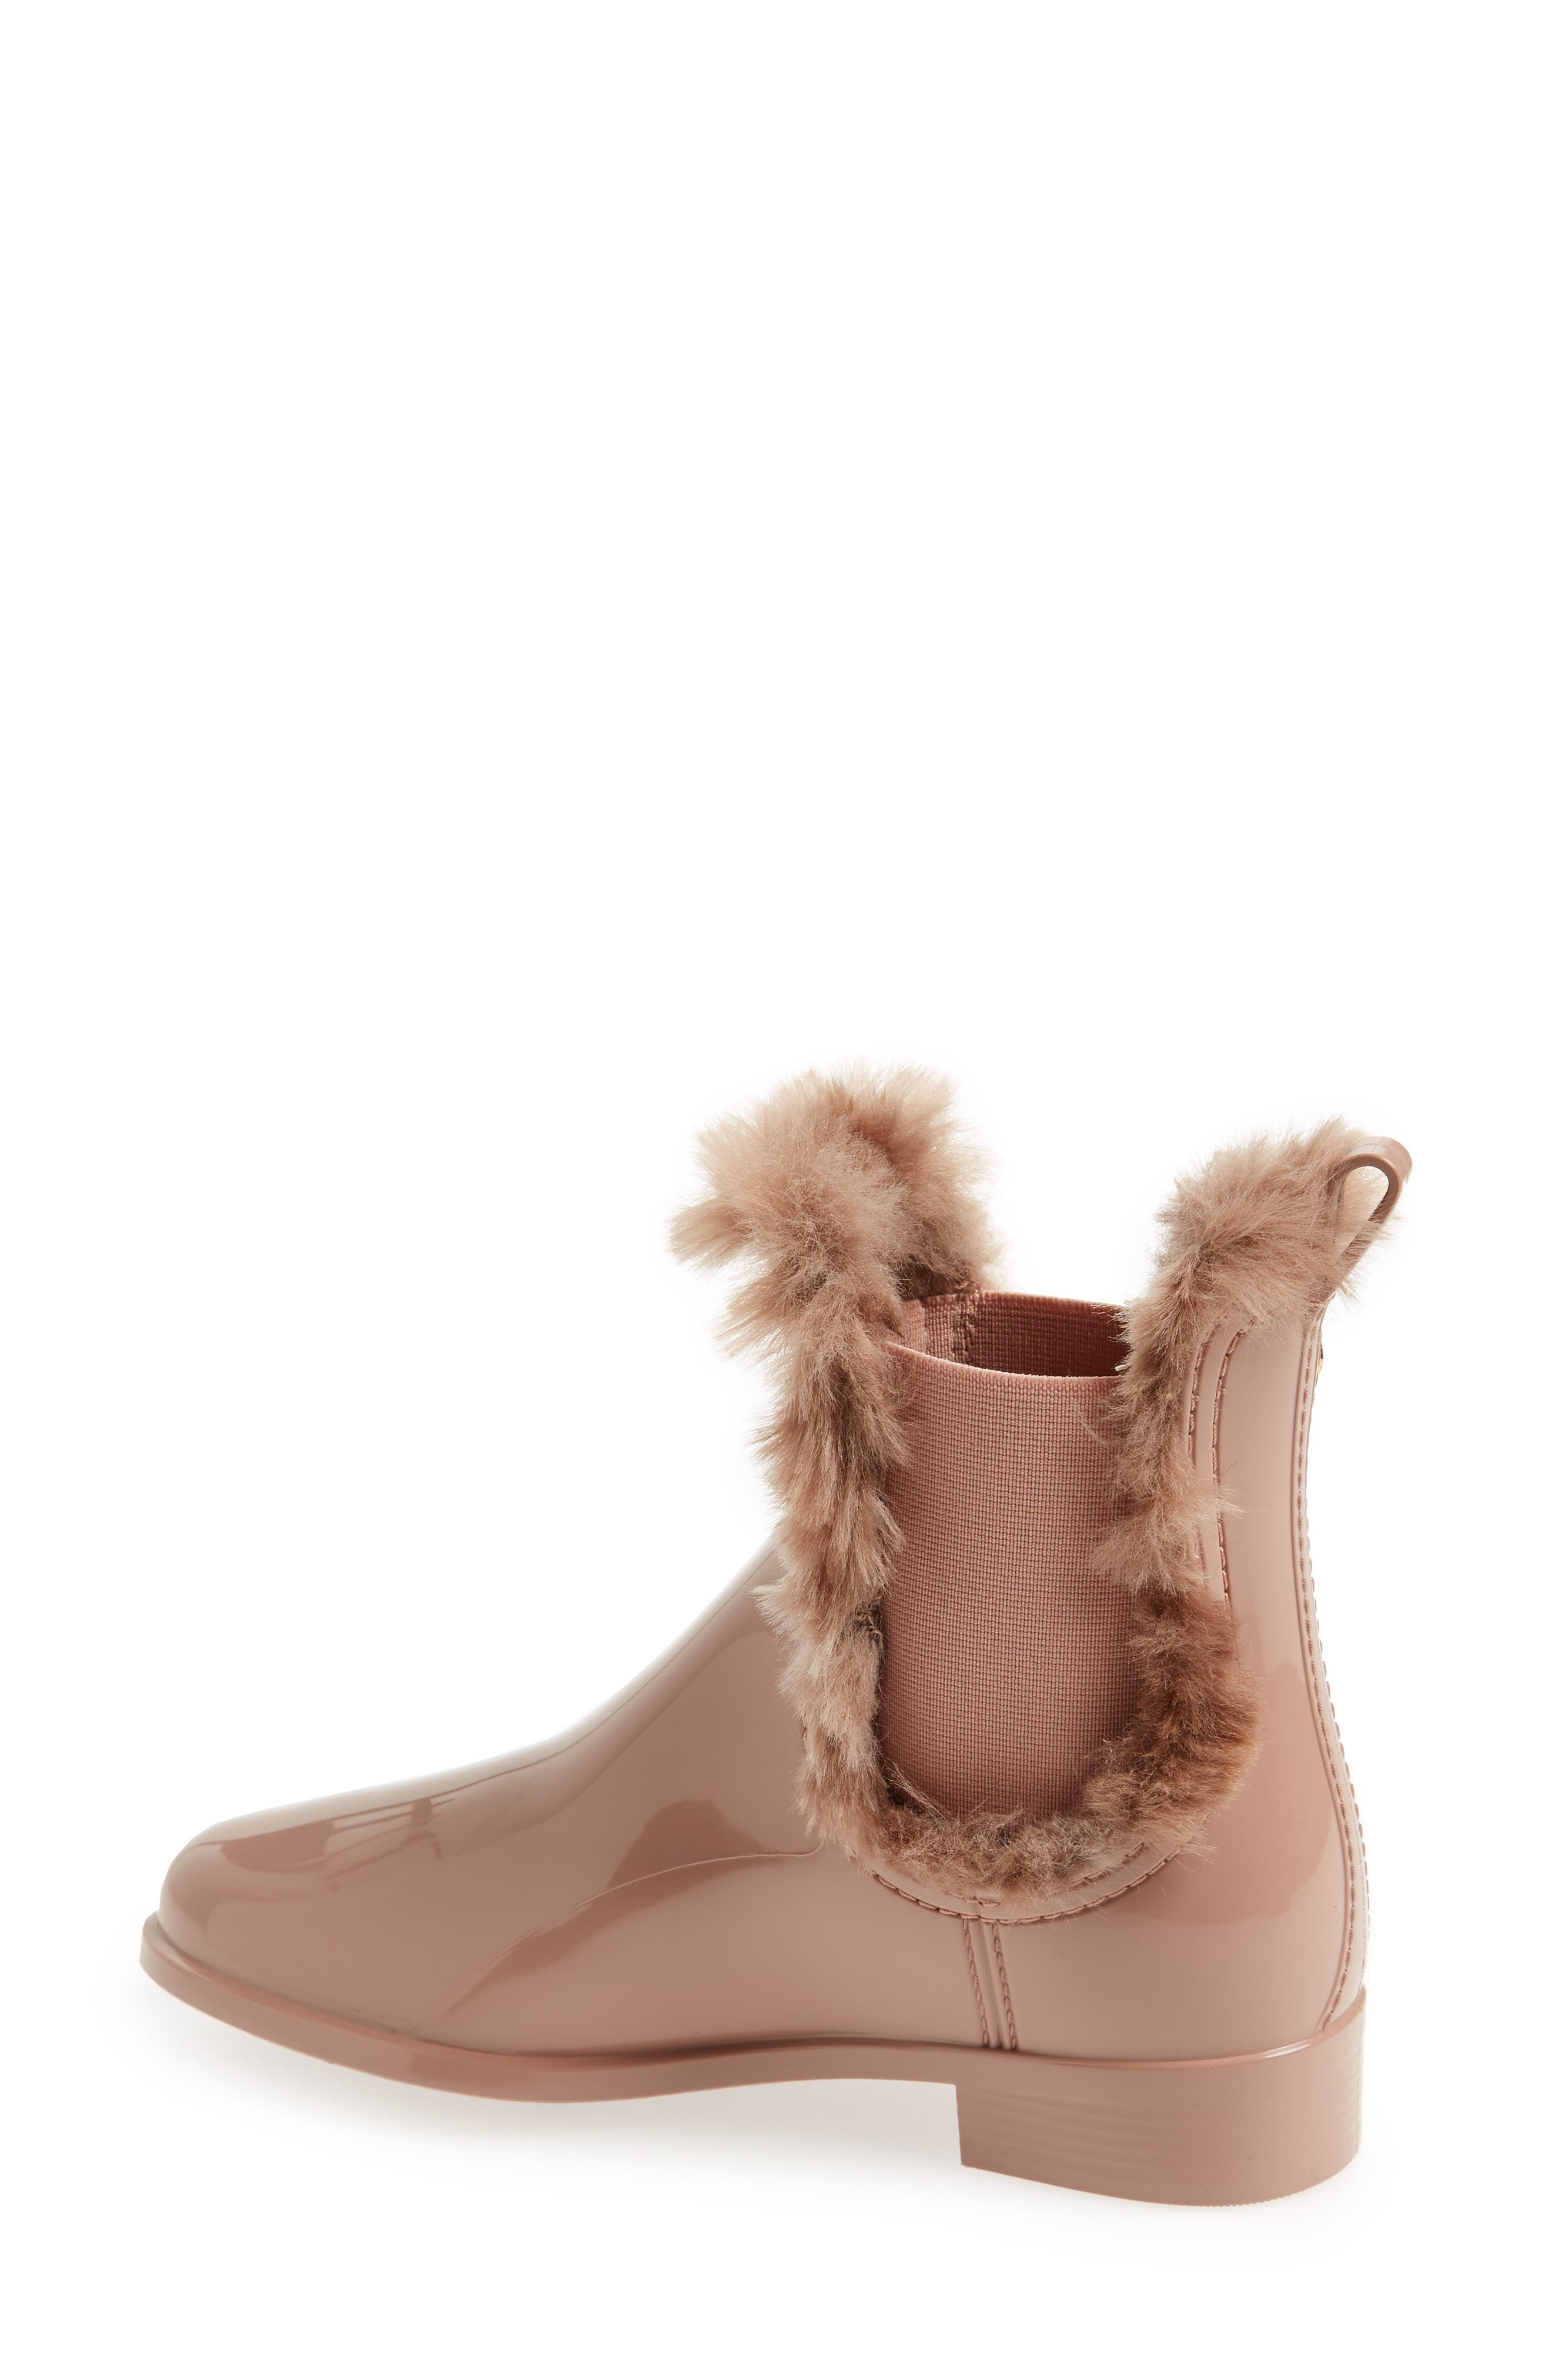 Aisha Waterproof Chelsea Boot with Faux Fur Lining,                             Alternate thumbnail 2, color,                             ROSE MATTE